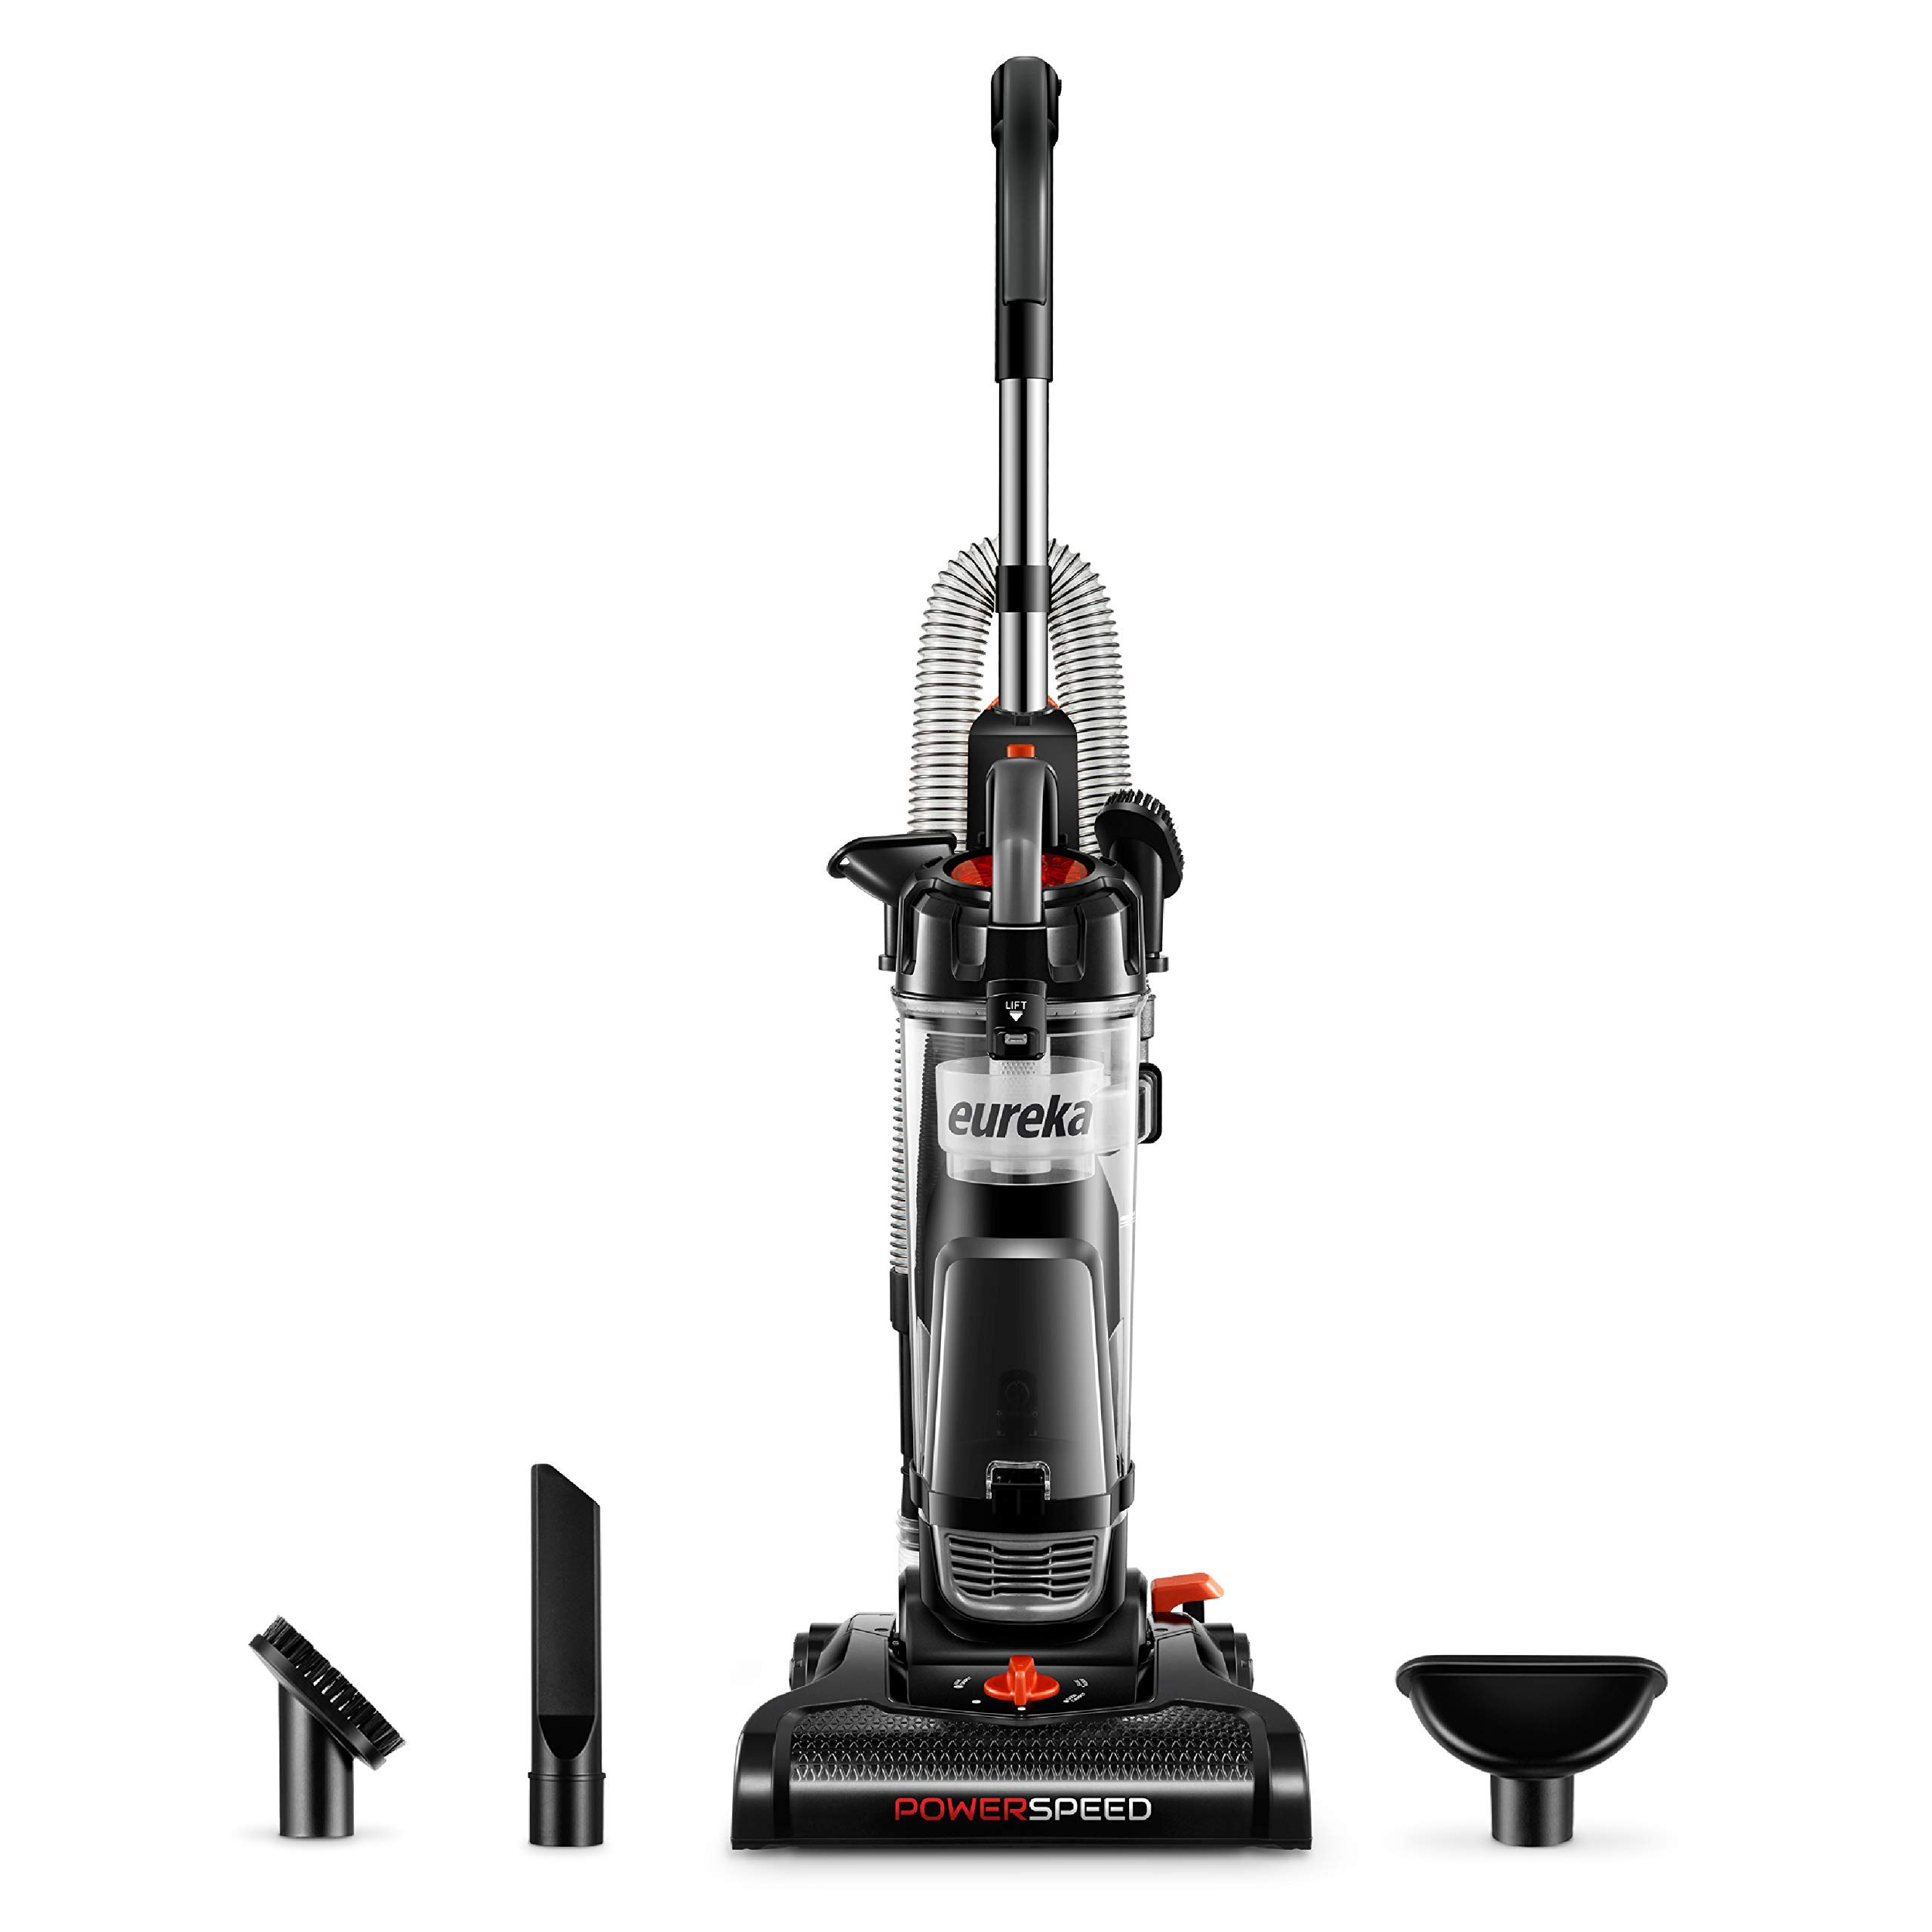 Eureka NEU180B Lightweight Powerful Upright, Pet Hair Vacuum Cleaner for Home, Graphite (Renewed)